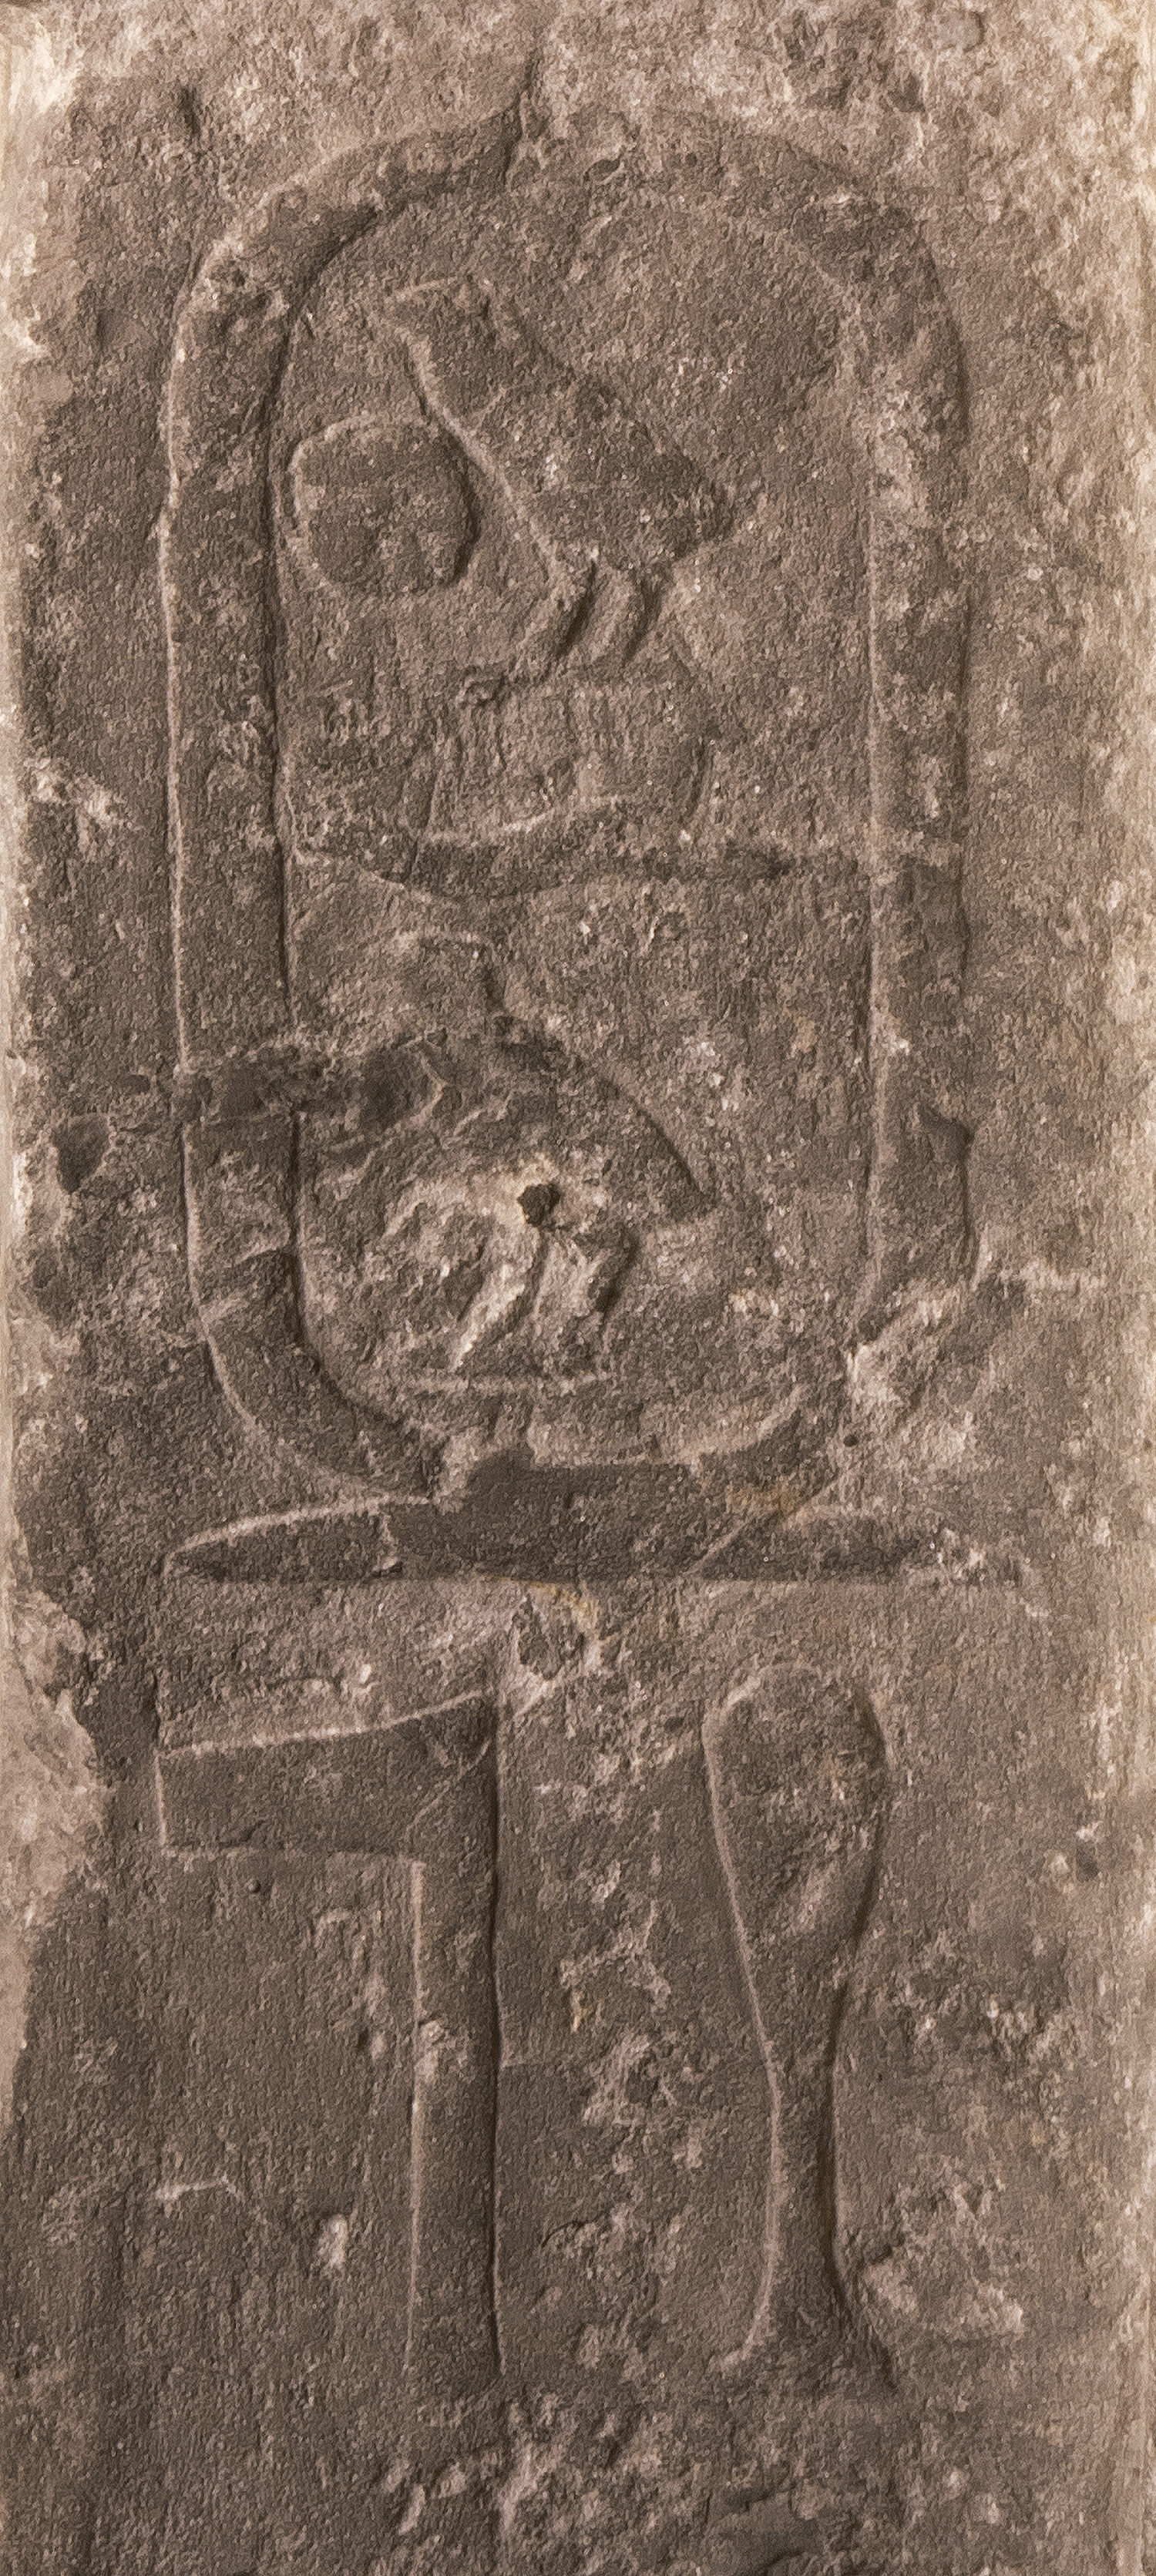 "Figure 23: A closeup of the text on the false door of Tepemankh showing the cartouche of King Khufu as part of Tepemankh's title:  hem-netcher Khufu  (""Priest of Khufu"")."